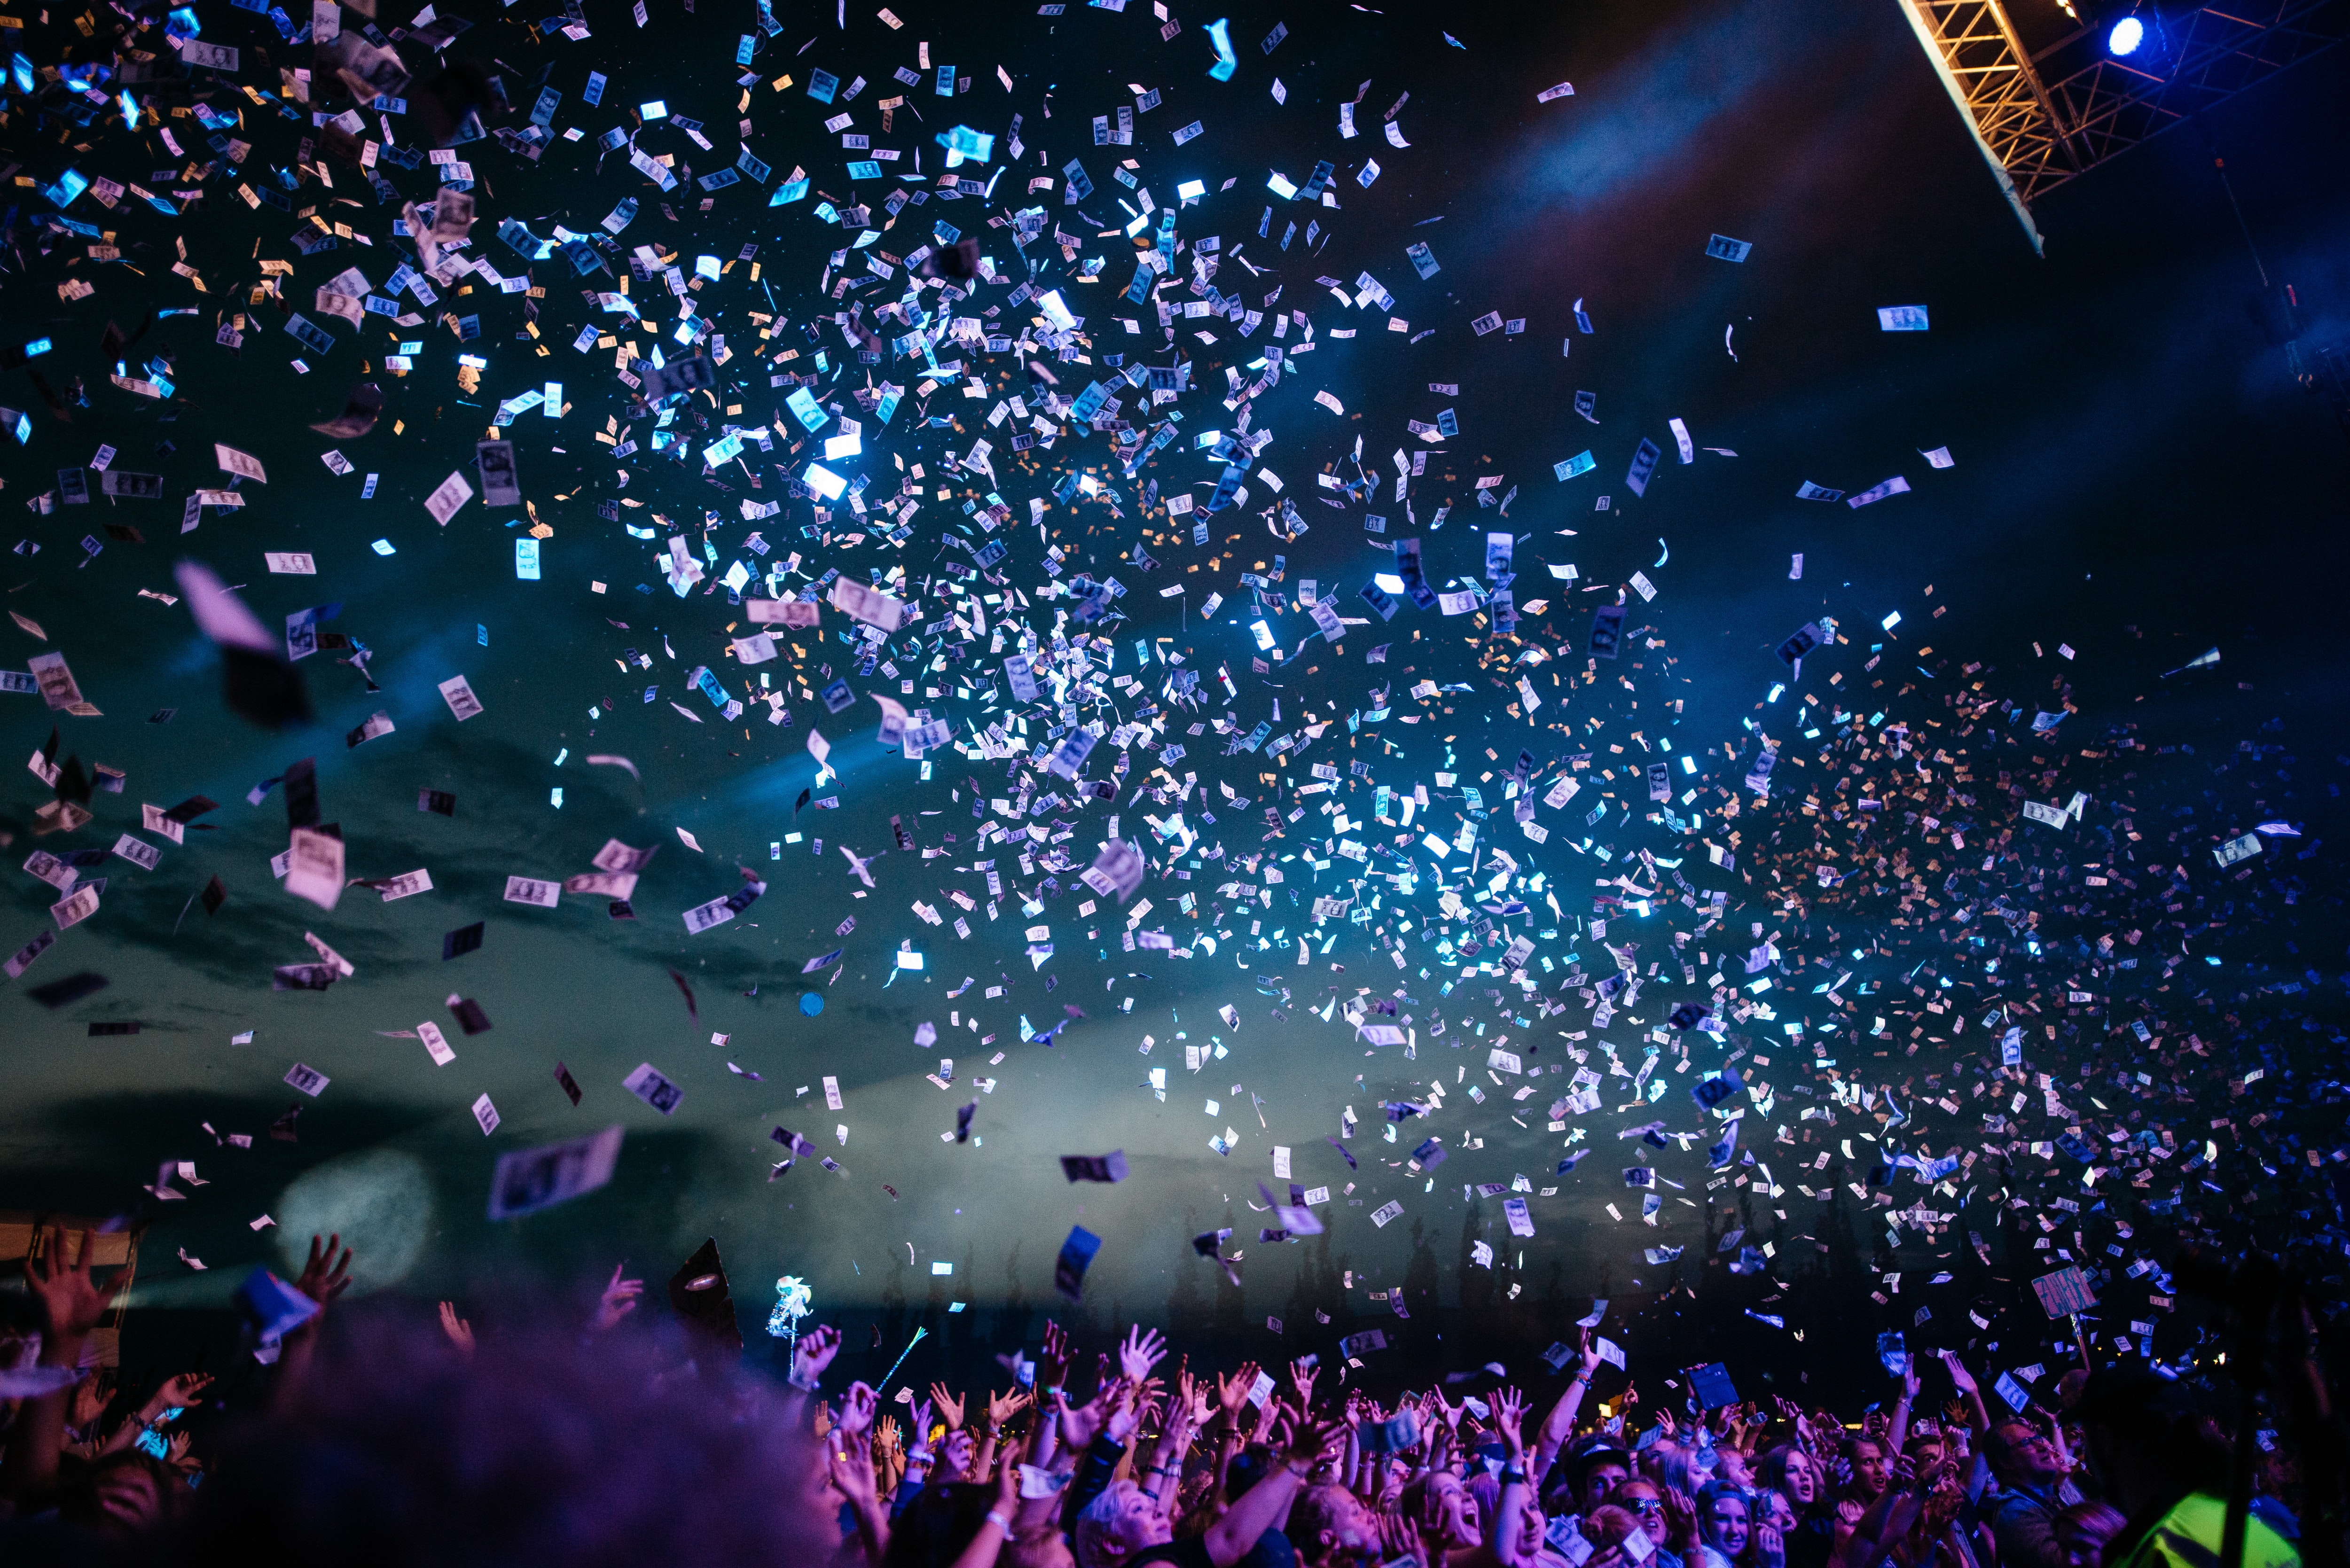 Confetti flying over the attendees of a concert at Dockville Festival